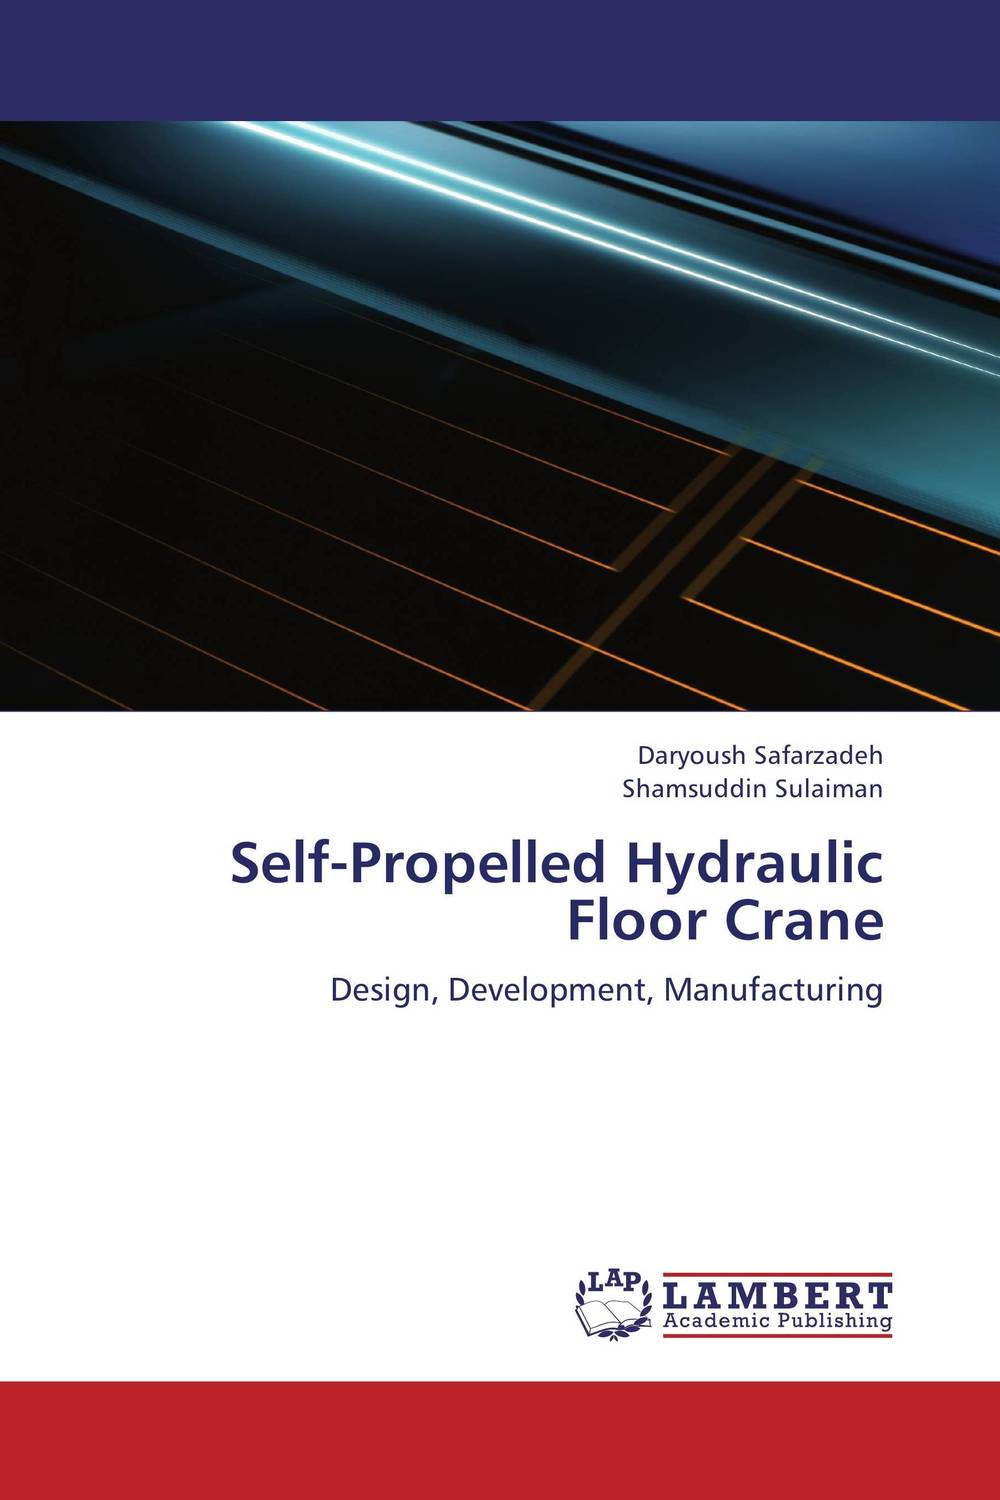 Self-Propelled Hydraulic Floor Crane rubber seals for fluid and hydraulic systems